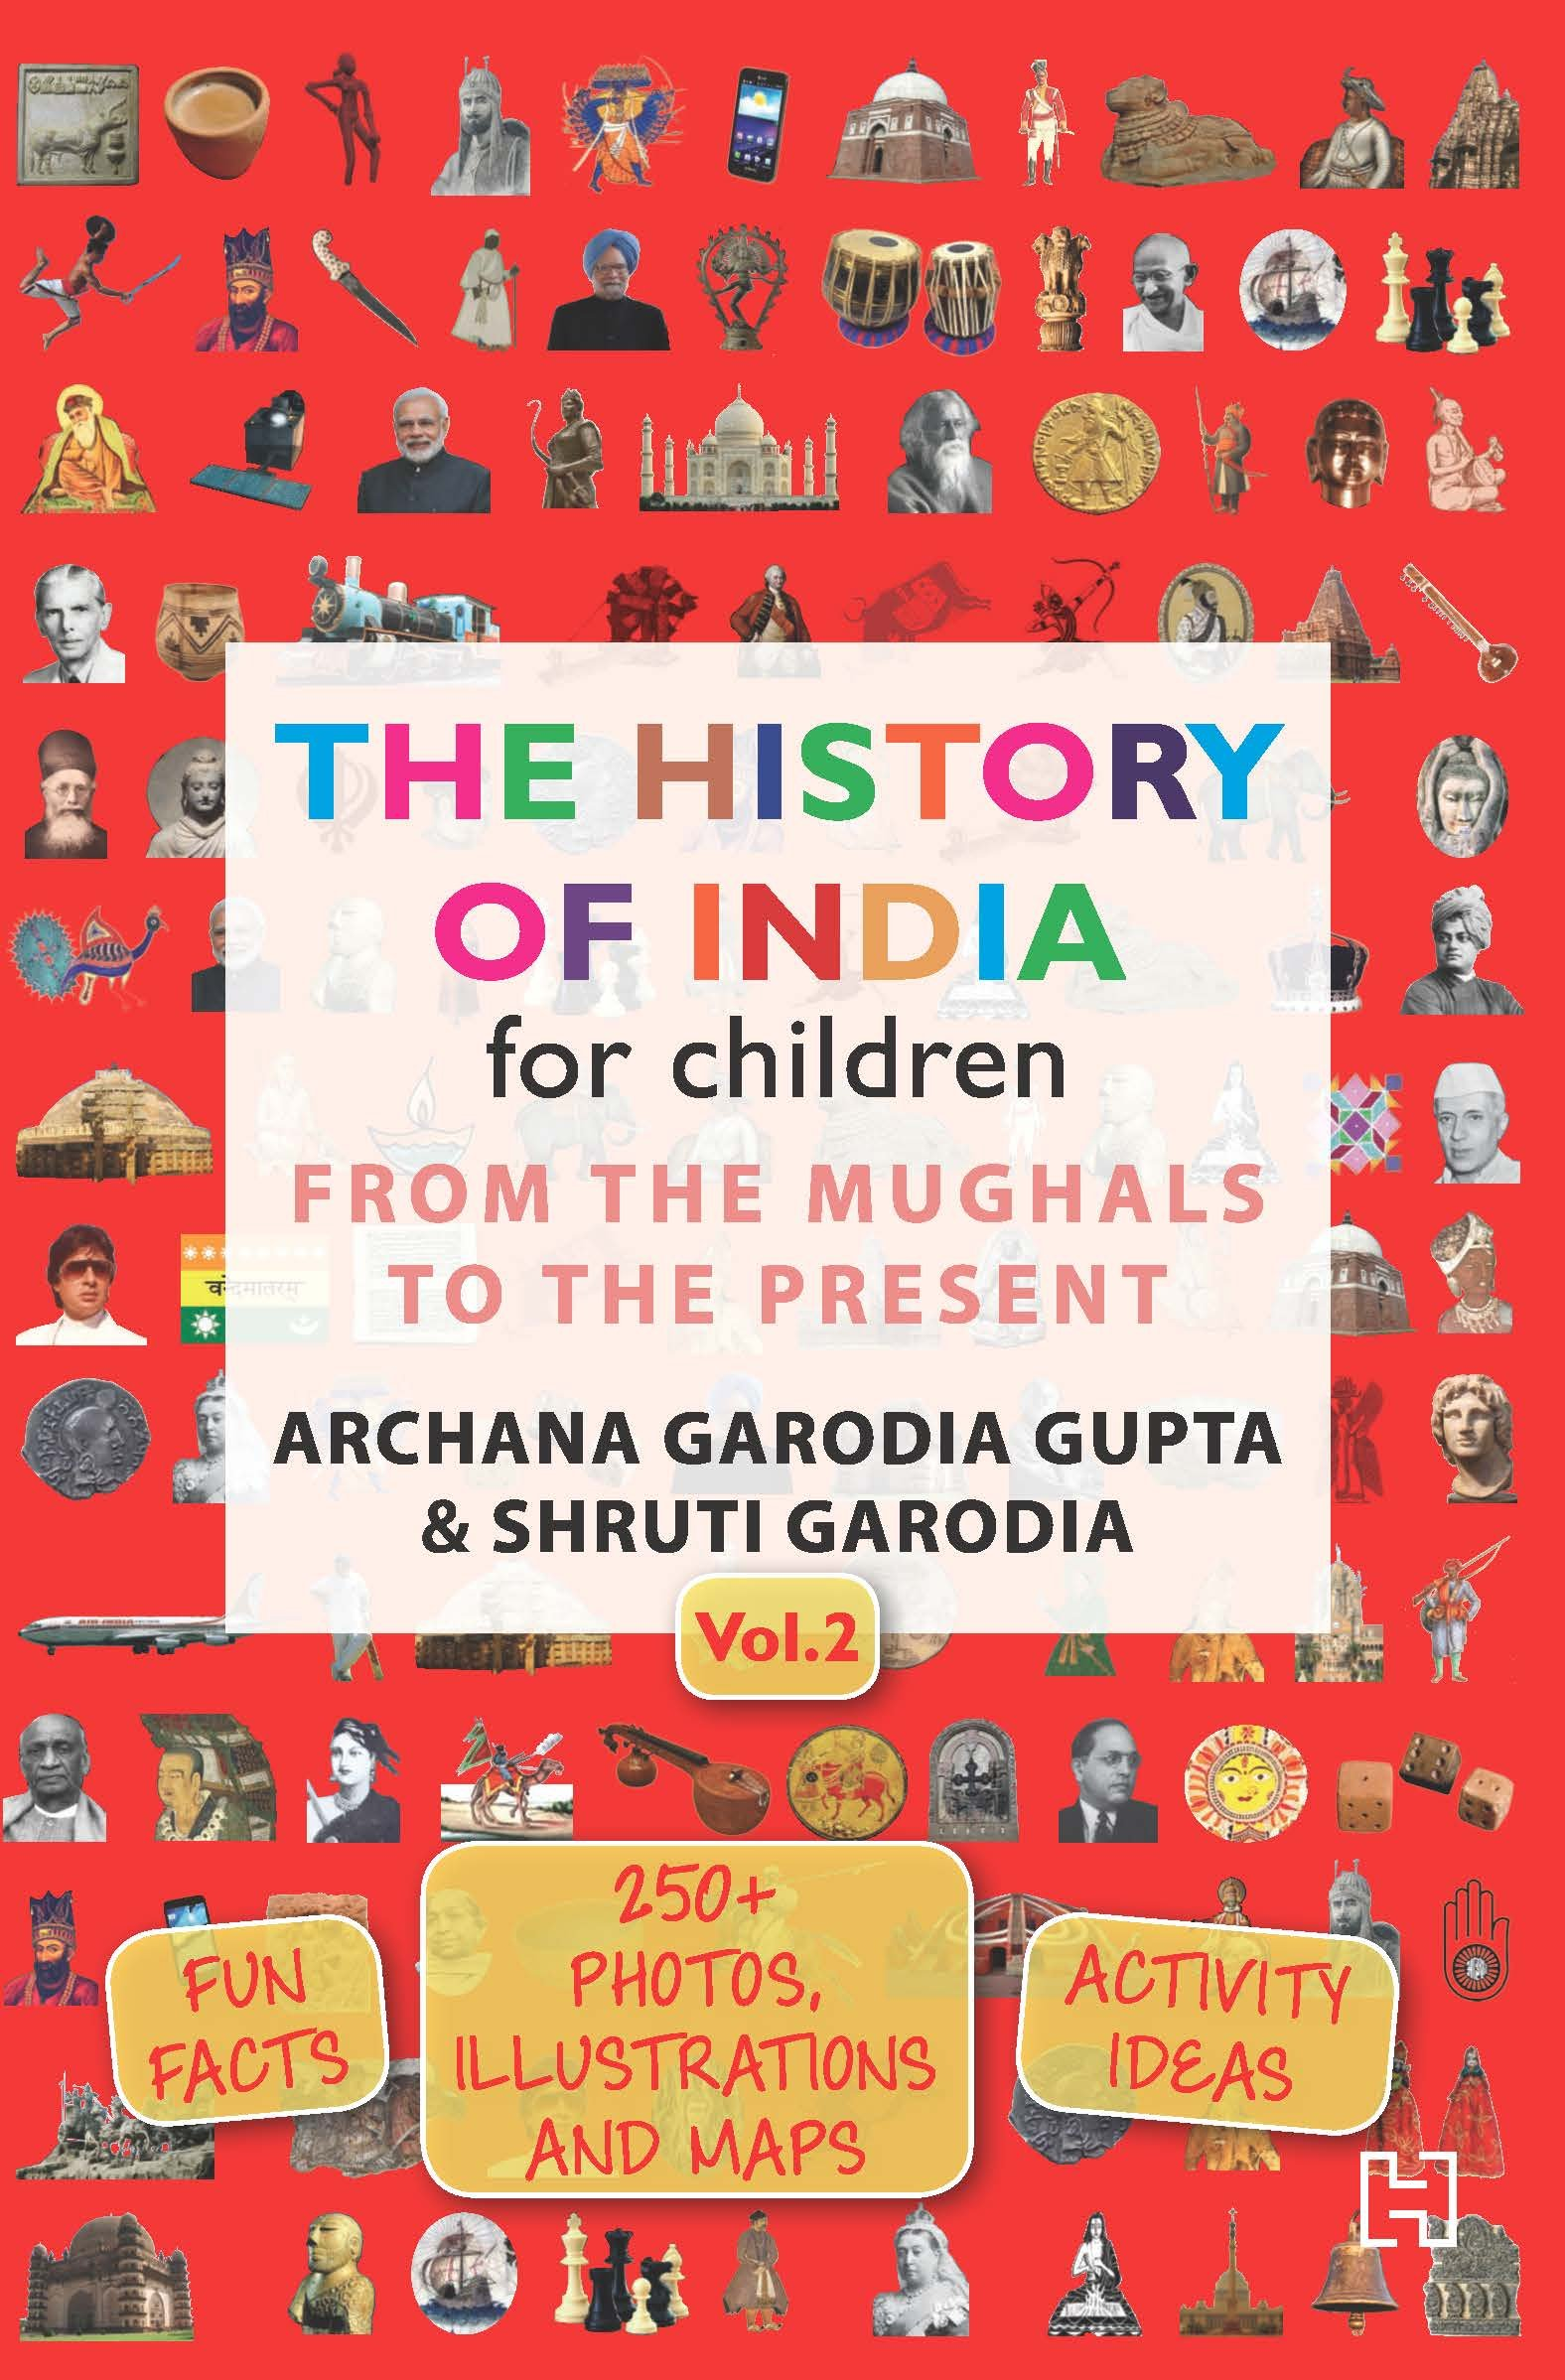 The History of India for Children – Vol. 2